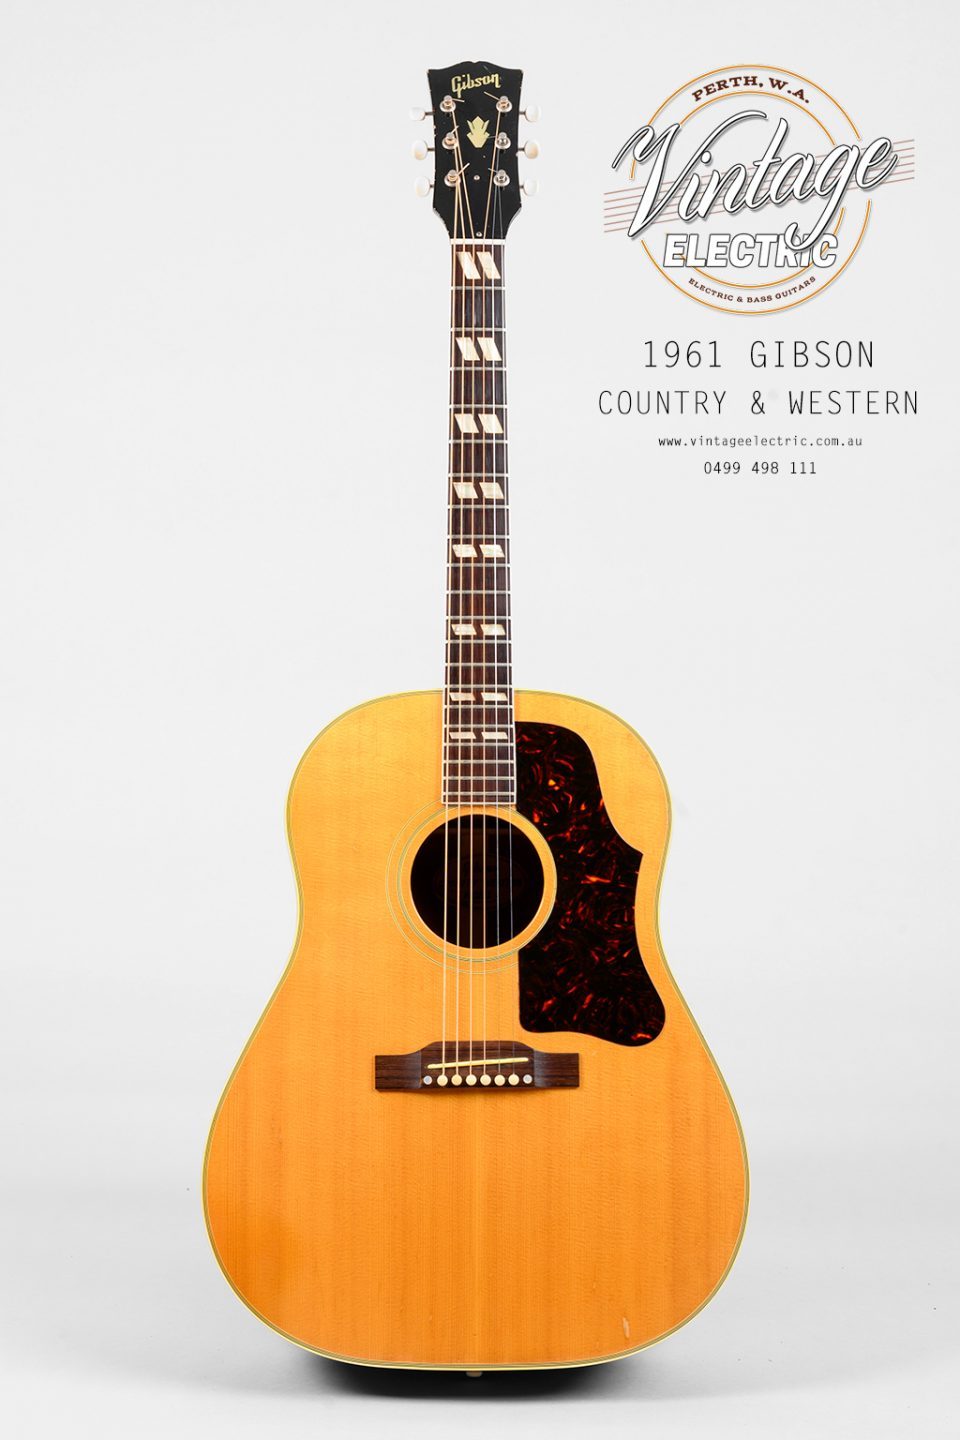 1961 Gibson Country Western Acoustic Guitar